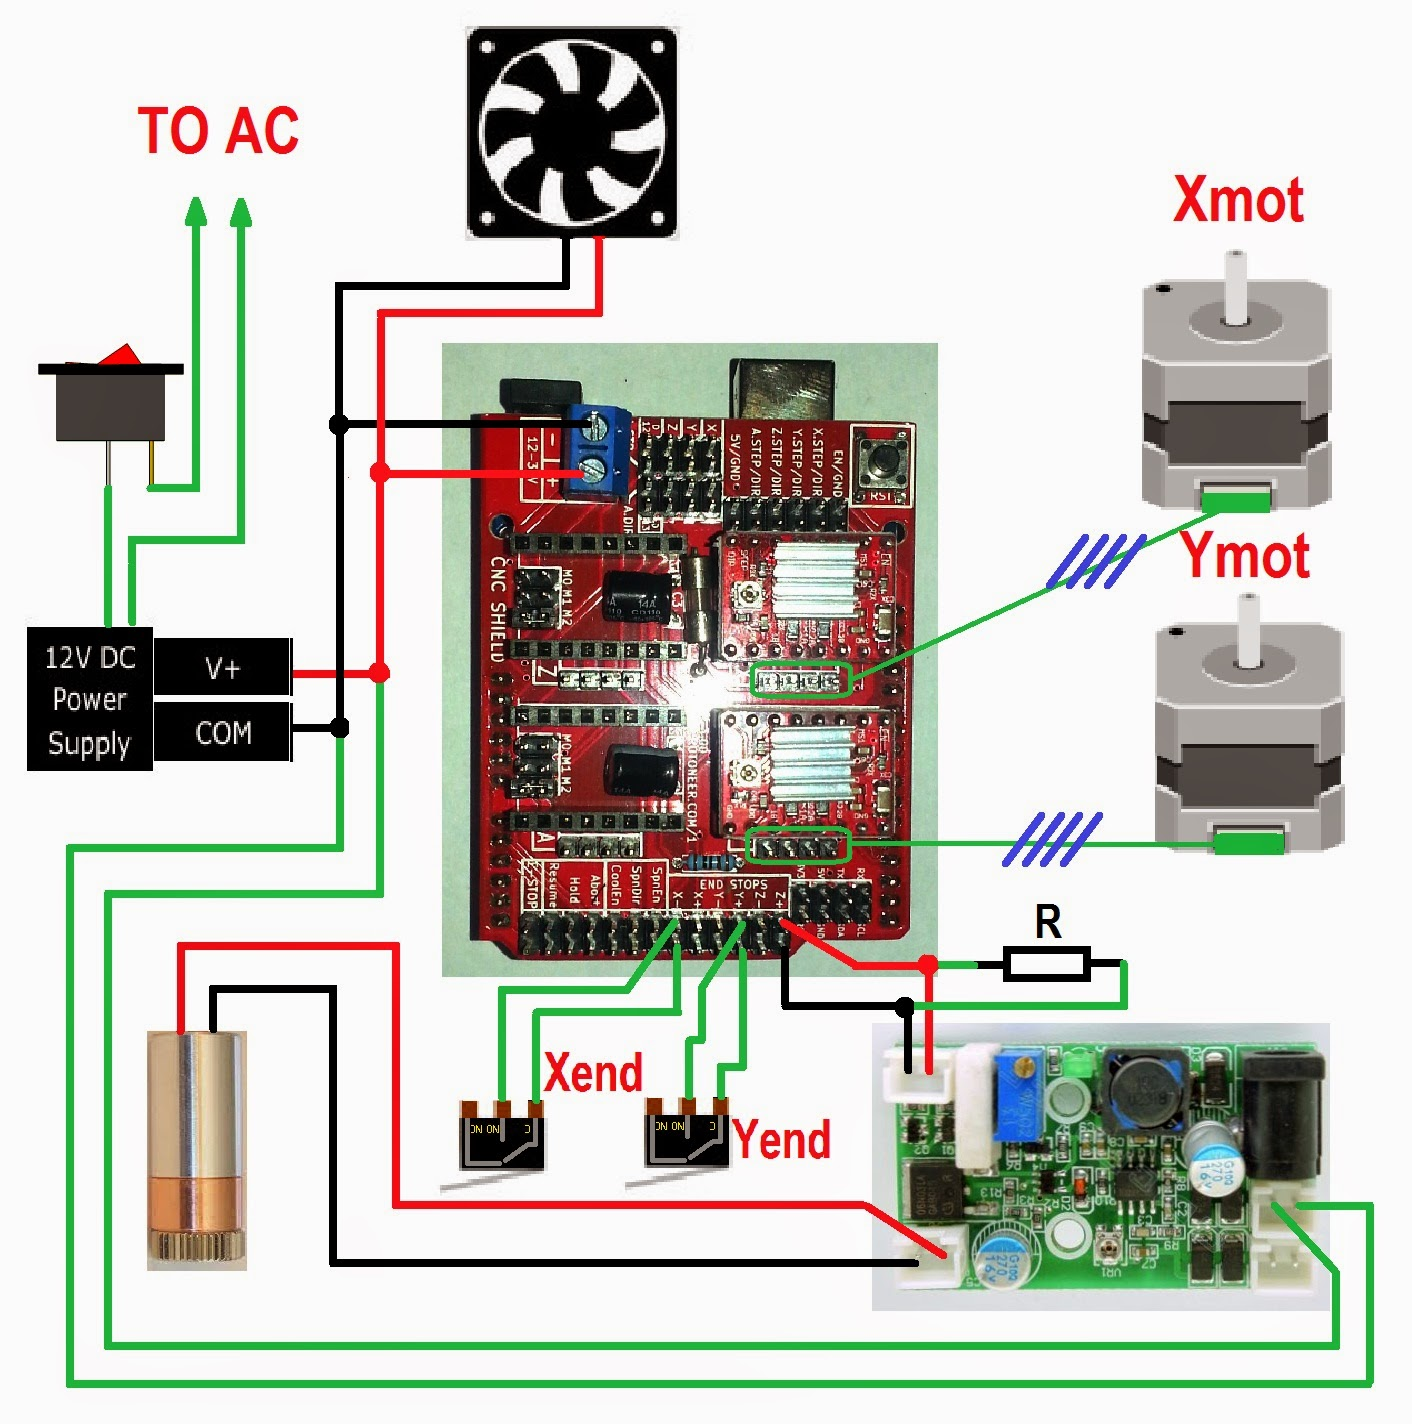 Wiring Arduino Cnc Shield Circuit Diagrams Wire Center Adjustabledutycycle Mono Diagram Tradeoficcom 3dpburner And Tuning Rh Blogspot Com Con Encoder Controller